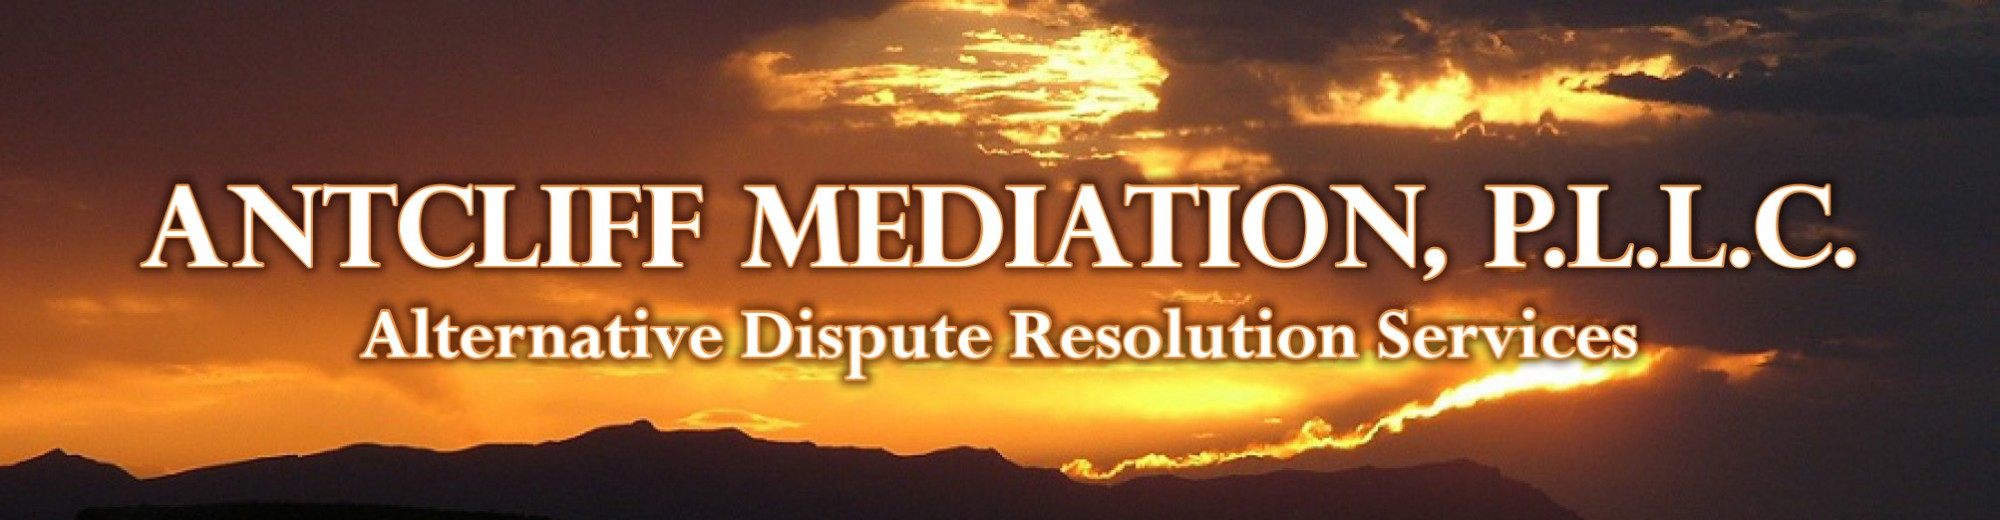 Antcliff Mediation